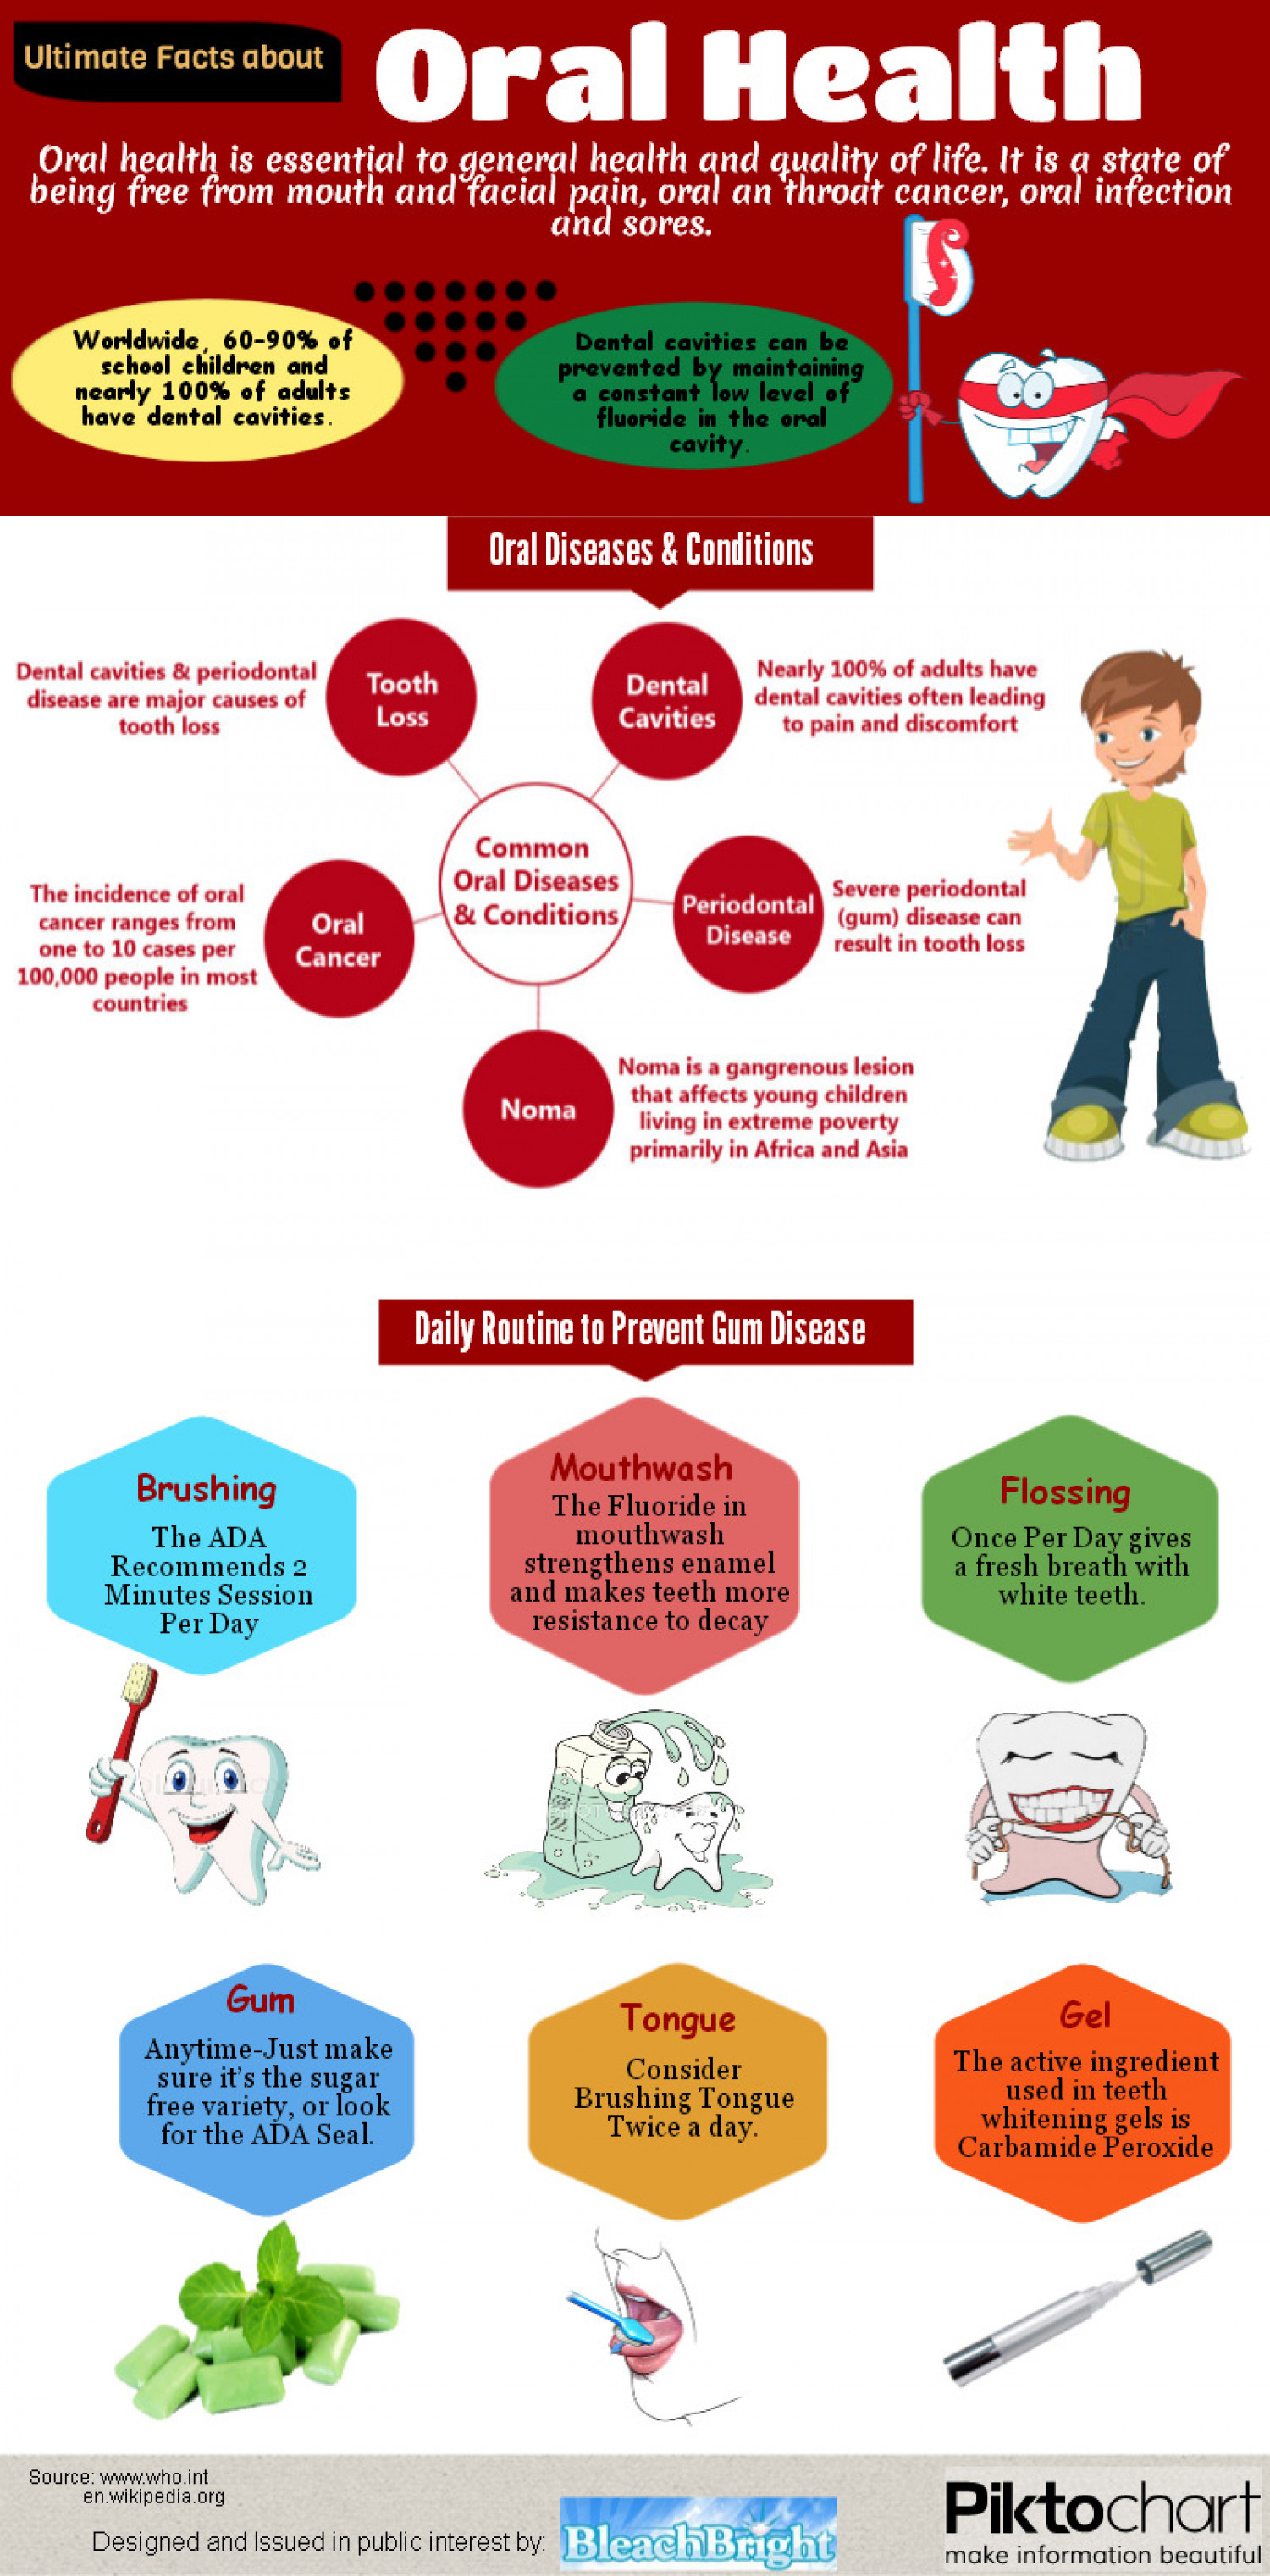 Ultimate Facts About Oral Health Infographic